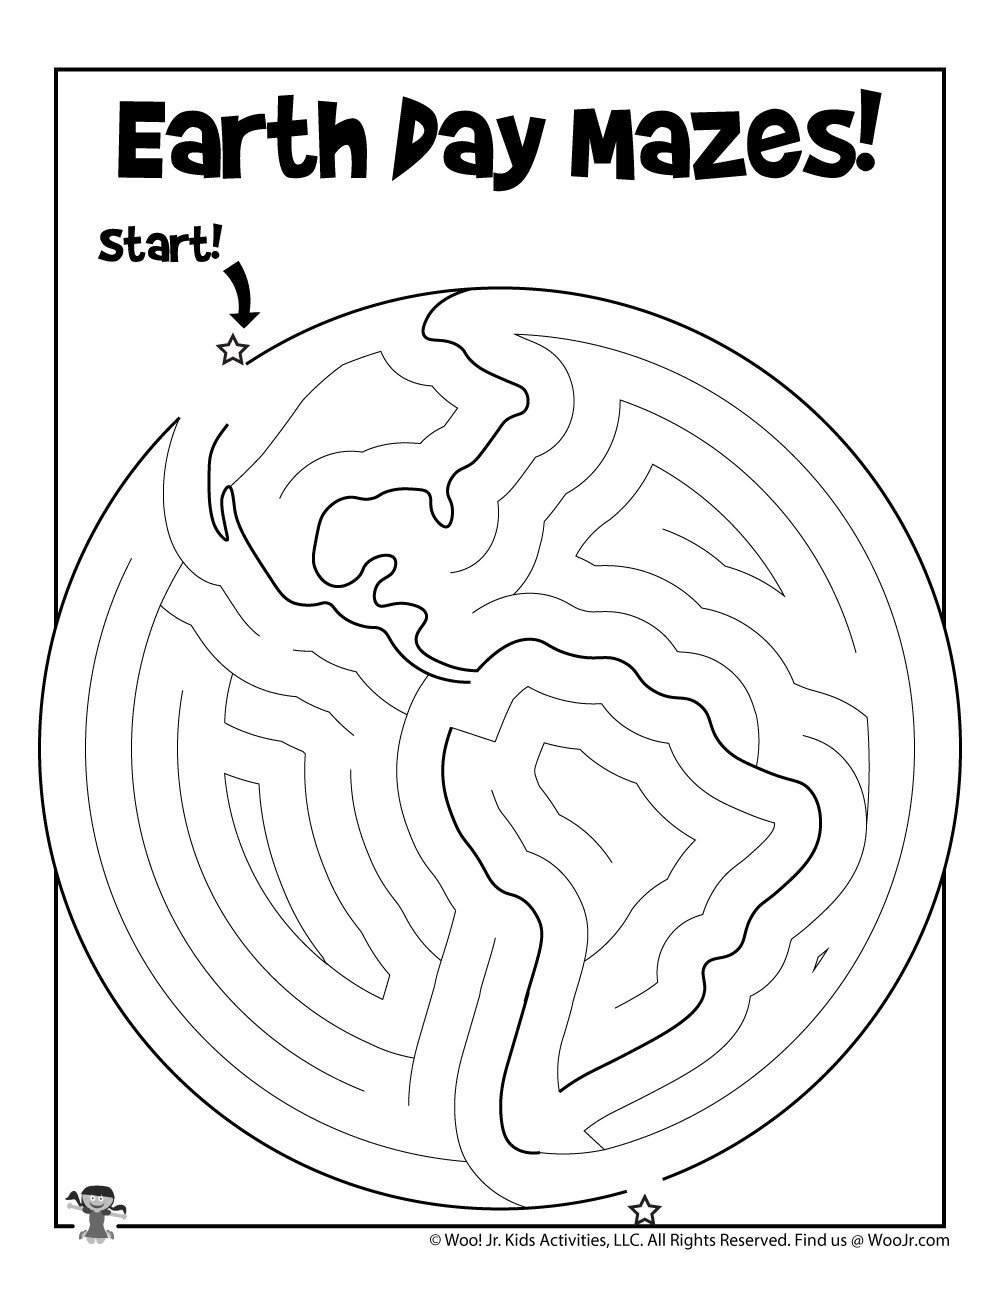 Kindergarten Earth Day Worksheets Printable Earth Day Maze for Kids